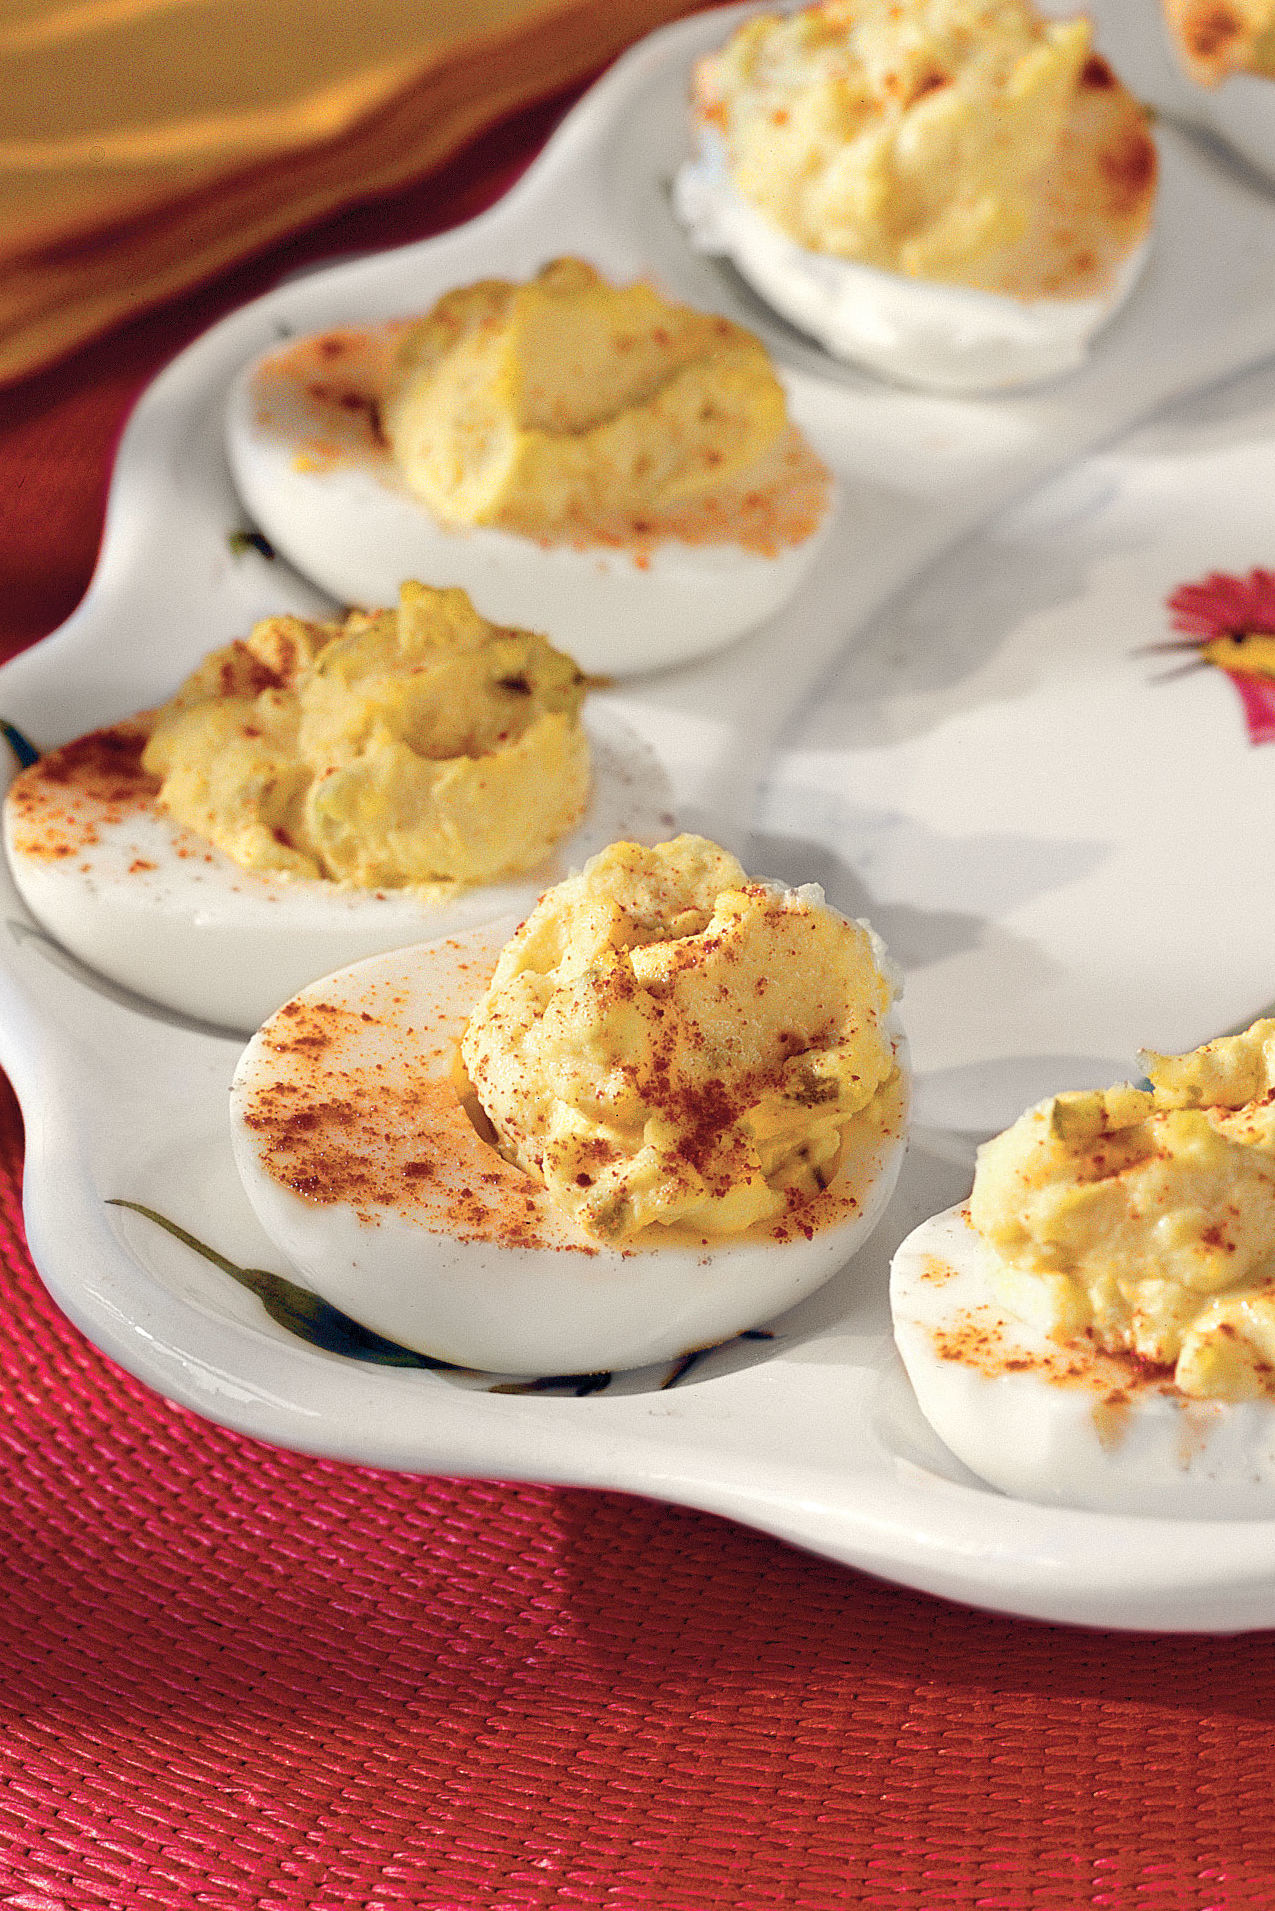 Taste of the South: How To Make Deviled Eggs